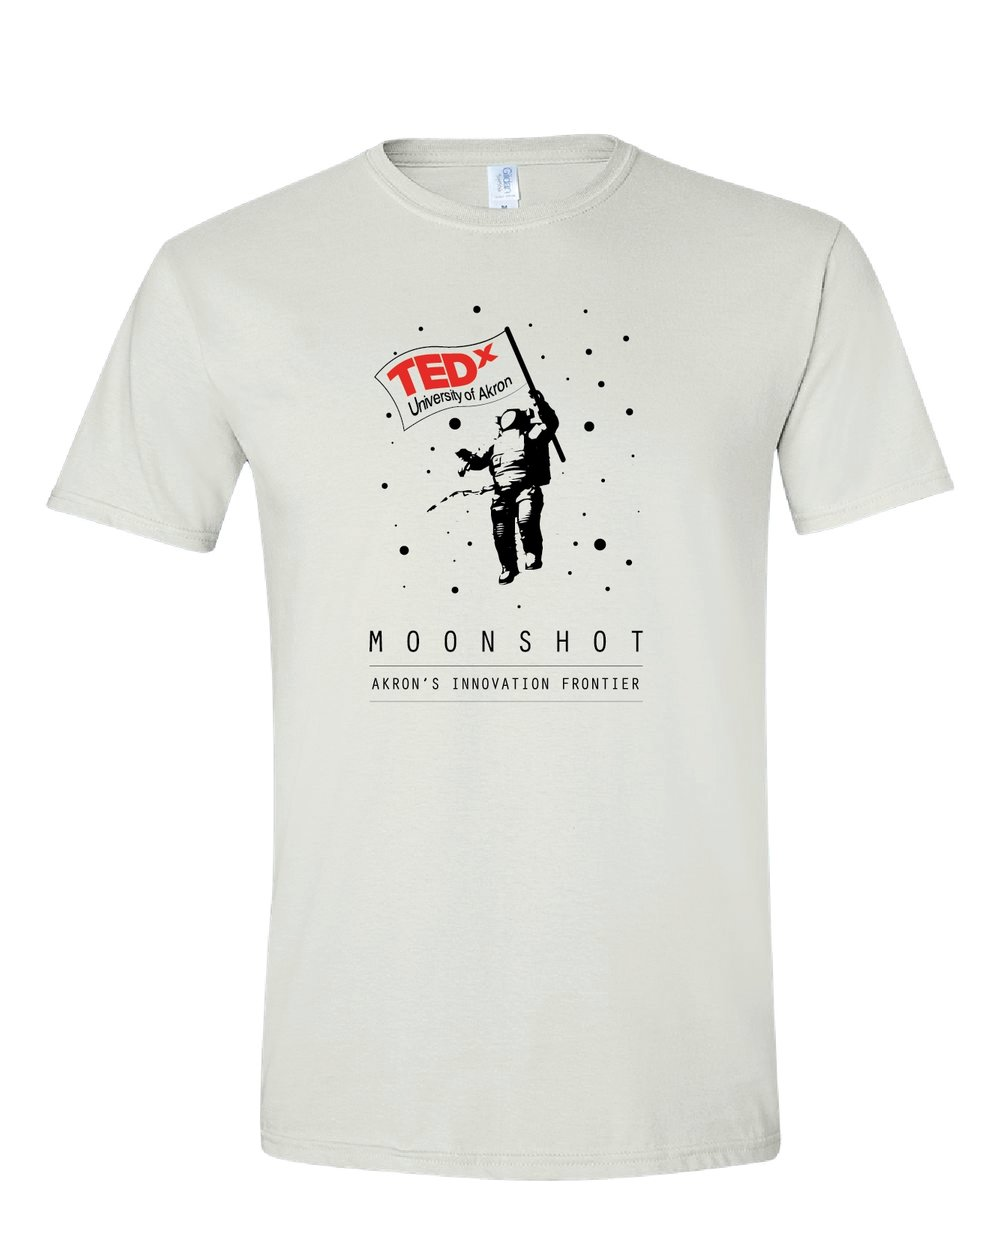 Moonshot Tees2.jpg